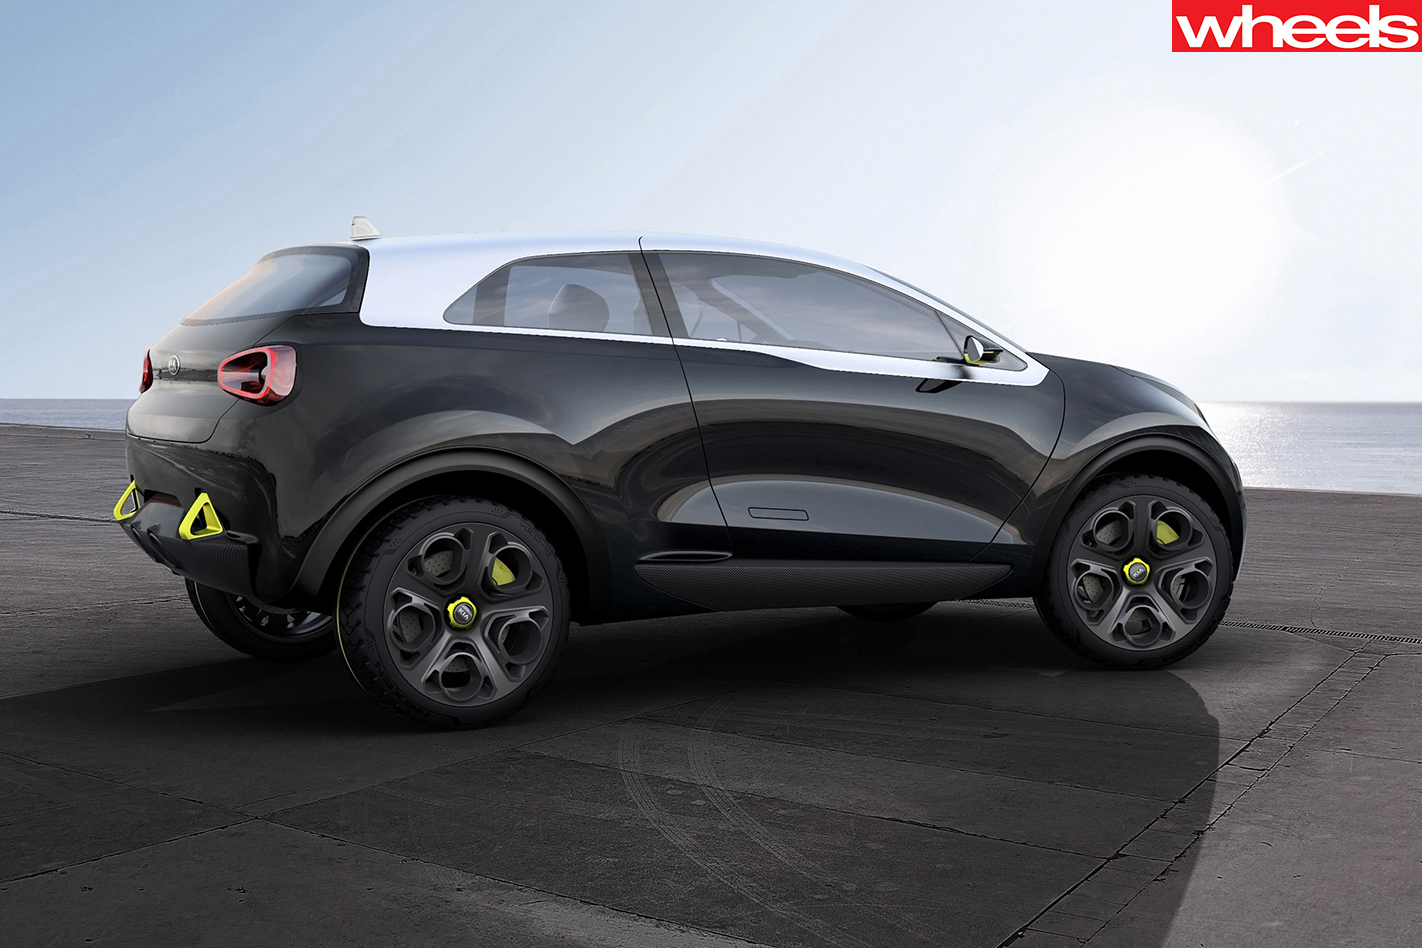 Kia Niro concept rear side